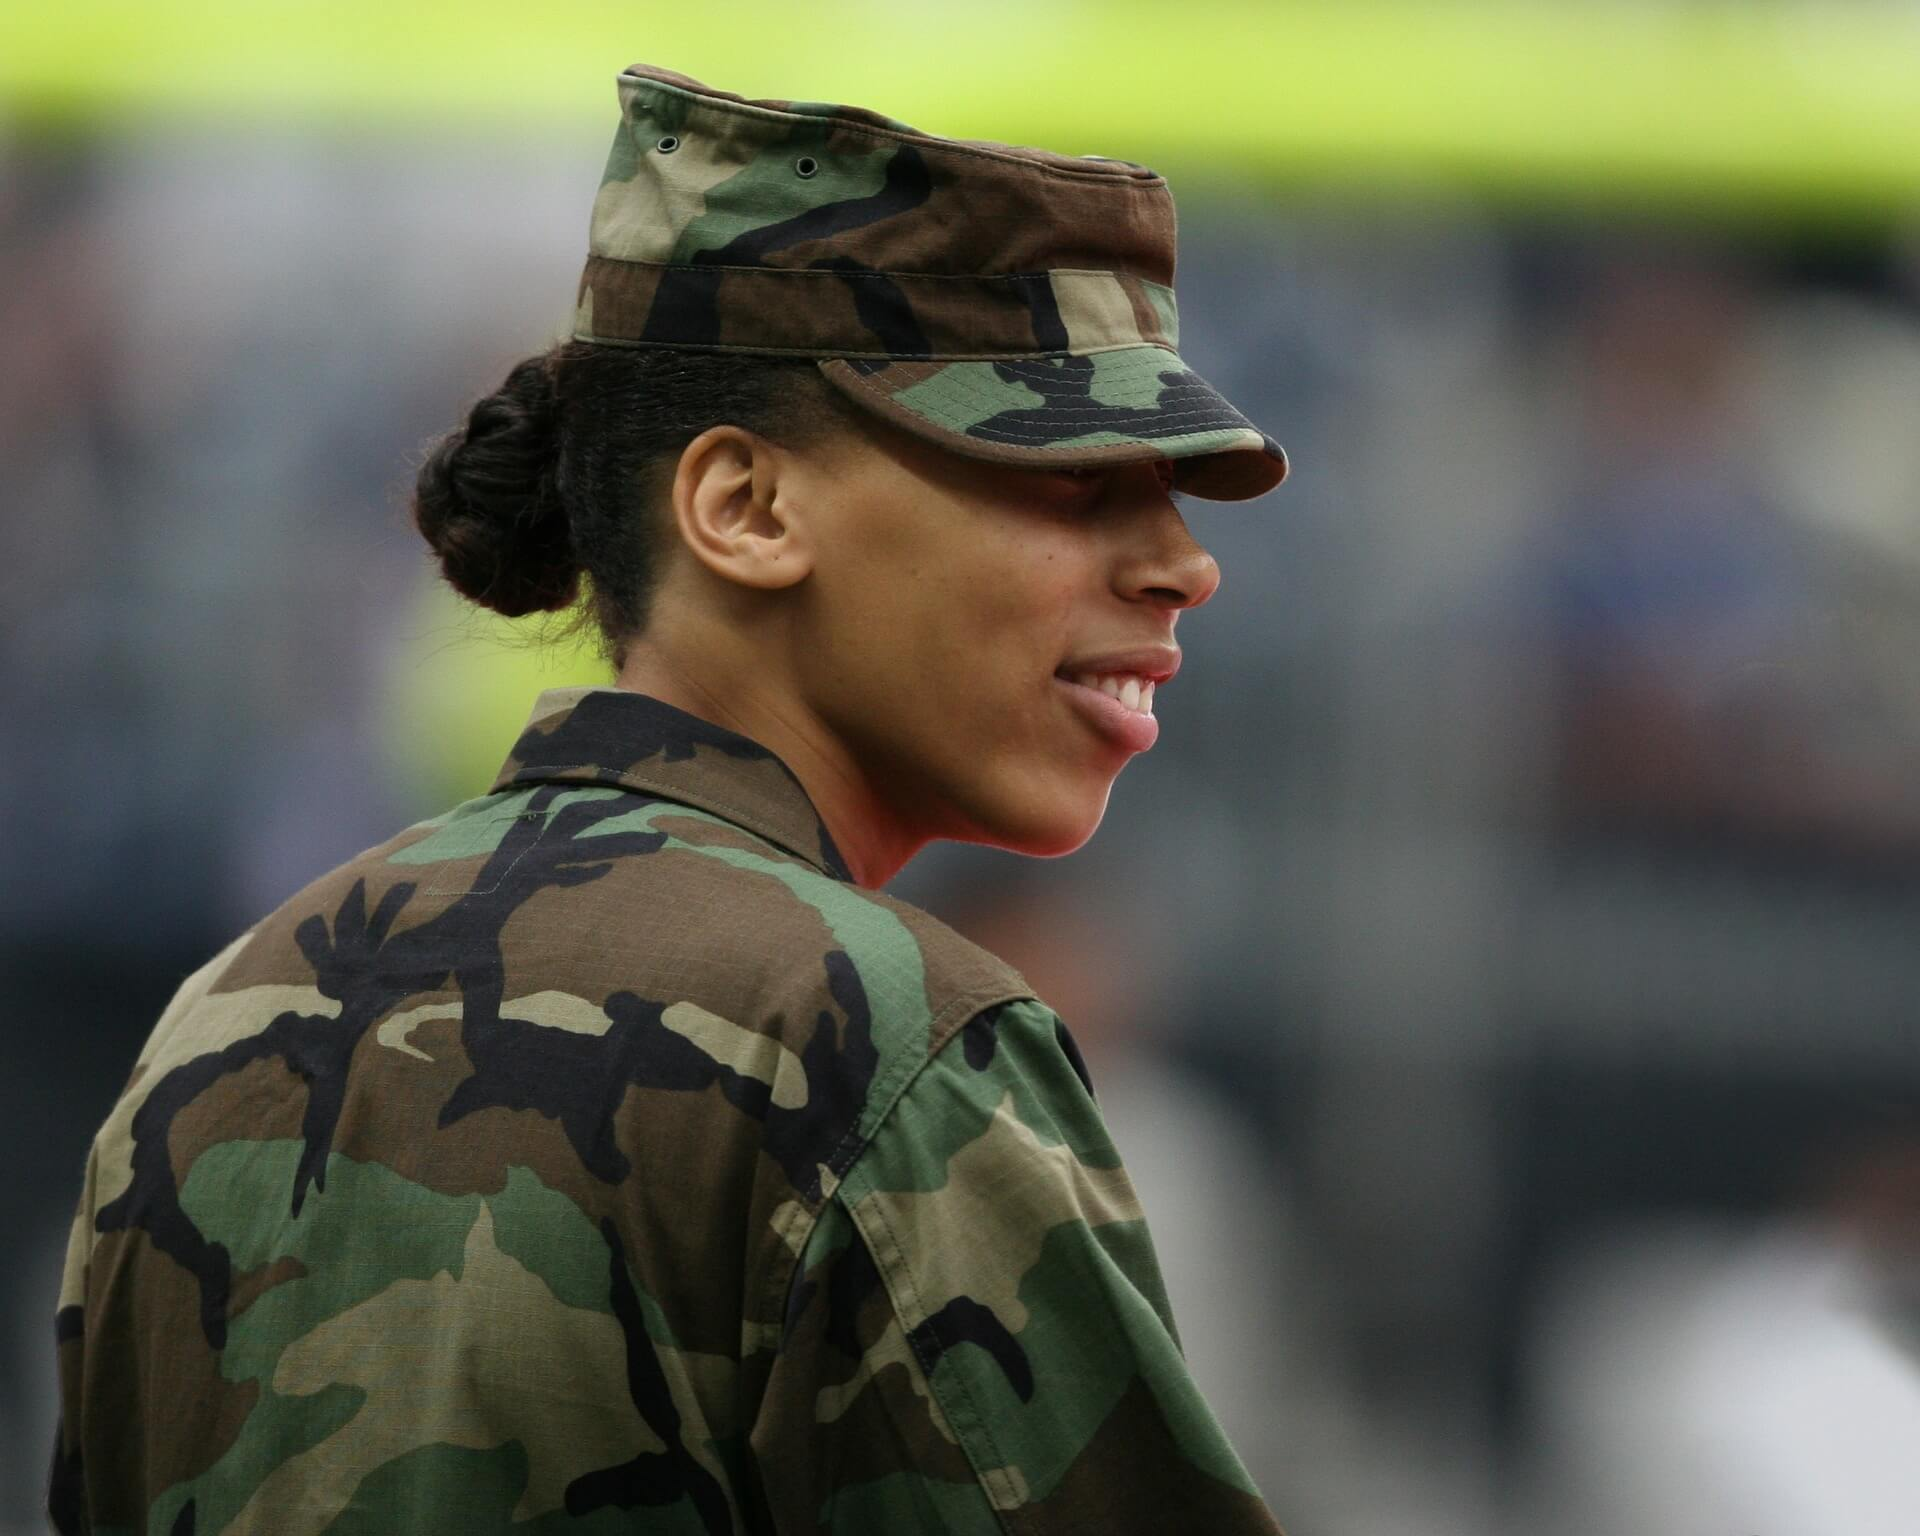 Woman in the military: what's my leadership style?